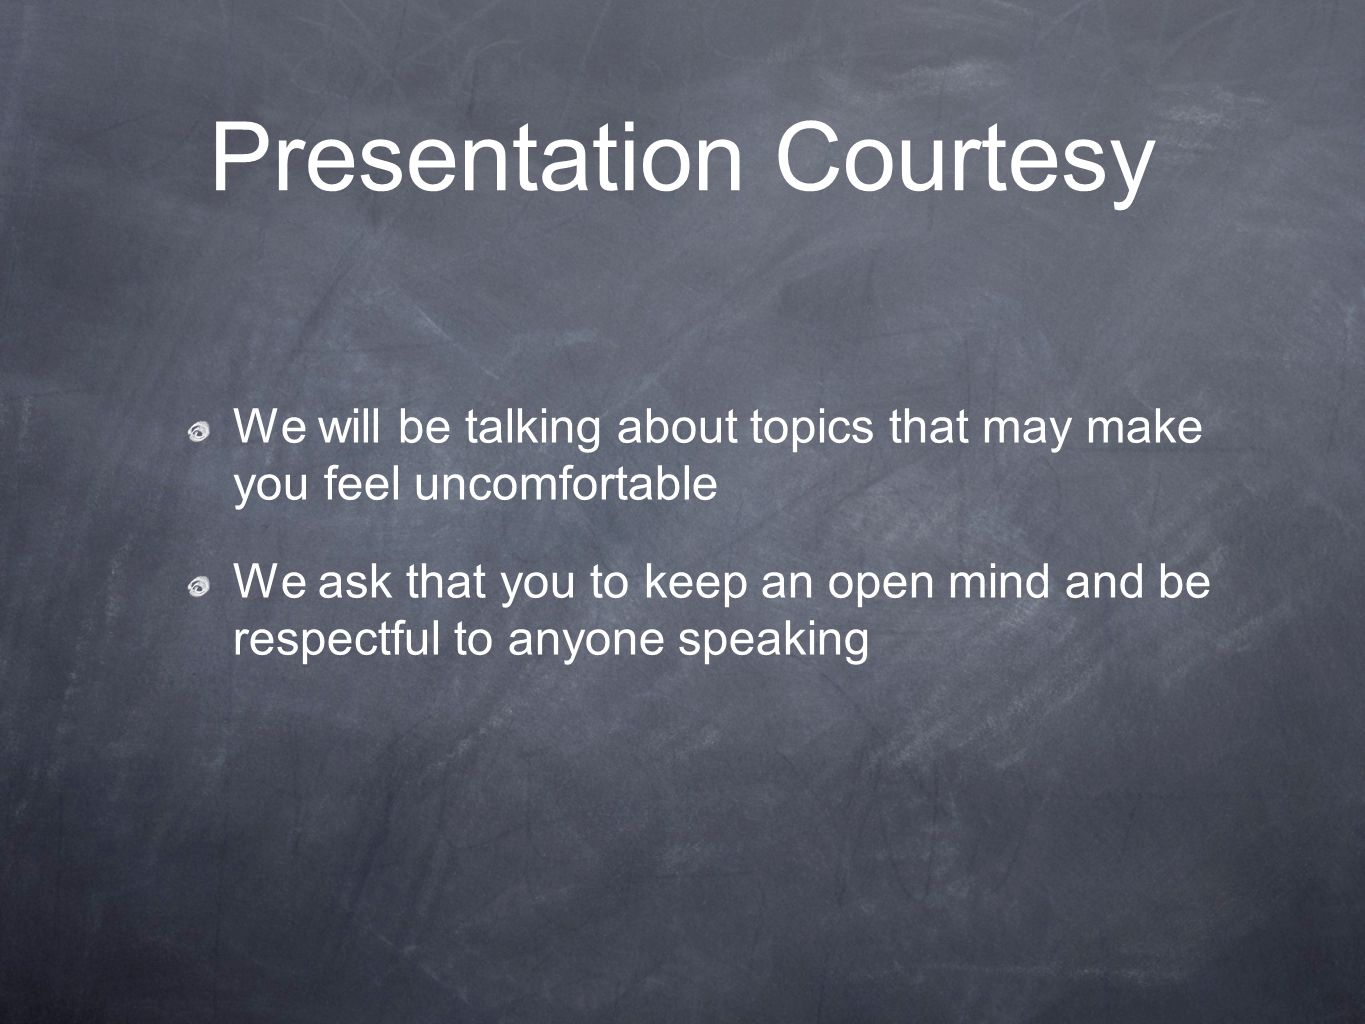 Presentation Courtesy We will be talking about topics that may make you feel uncomfortable We ask that you to keep an open mind and be respectful to anyone speaking